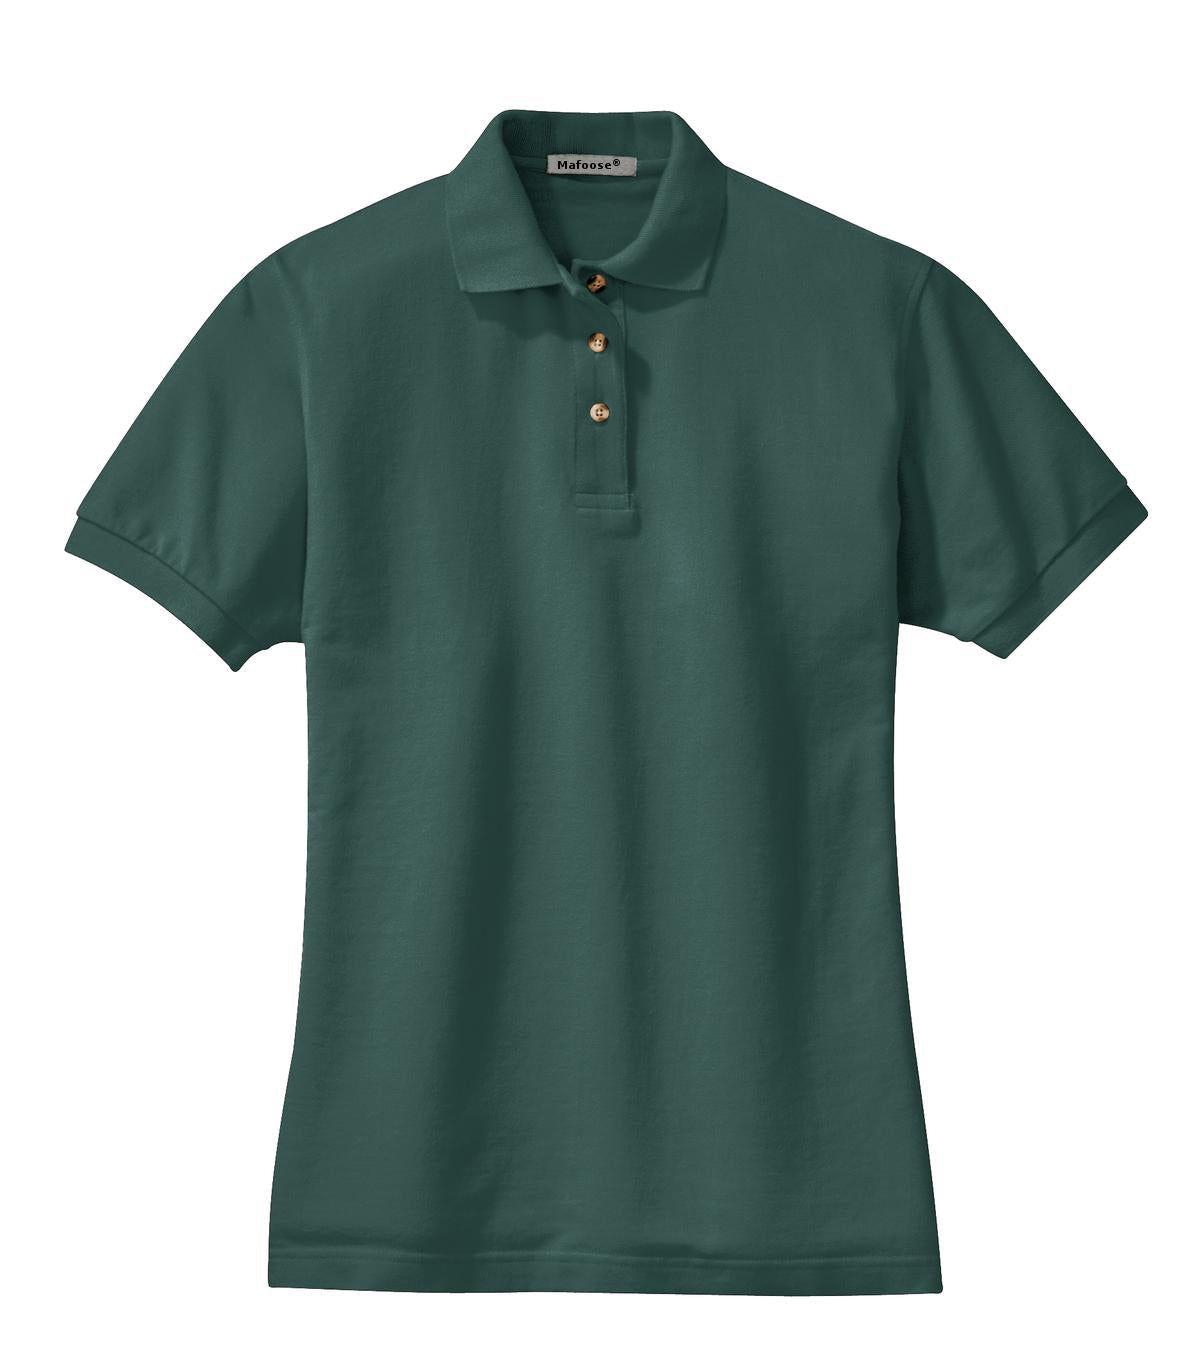 Mafoose Women's Heavyweight Cotton Pique Polo Shirt Dark Green-Front